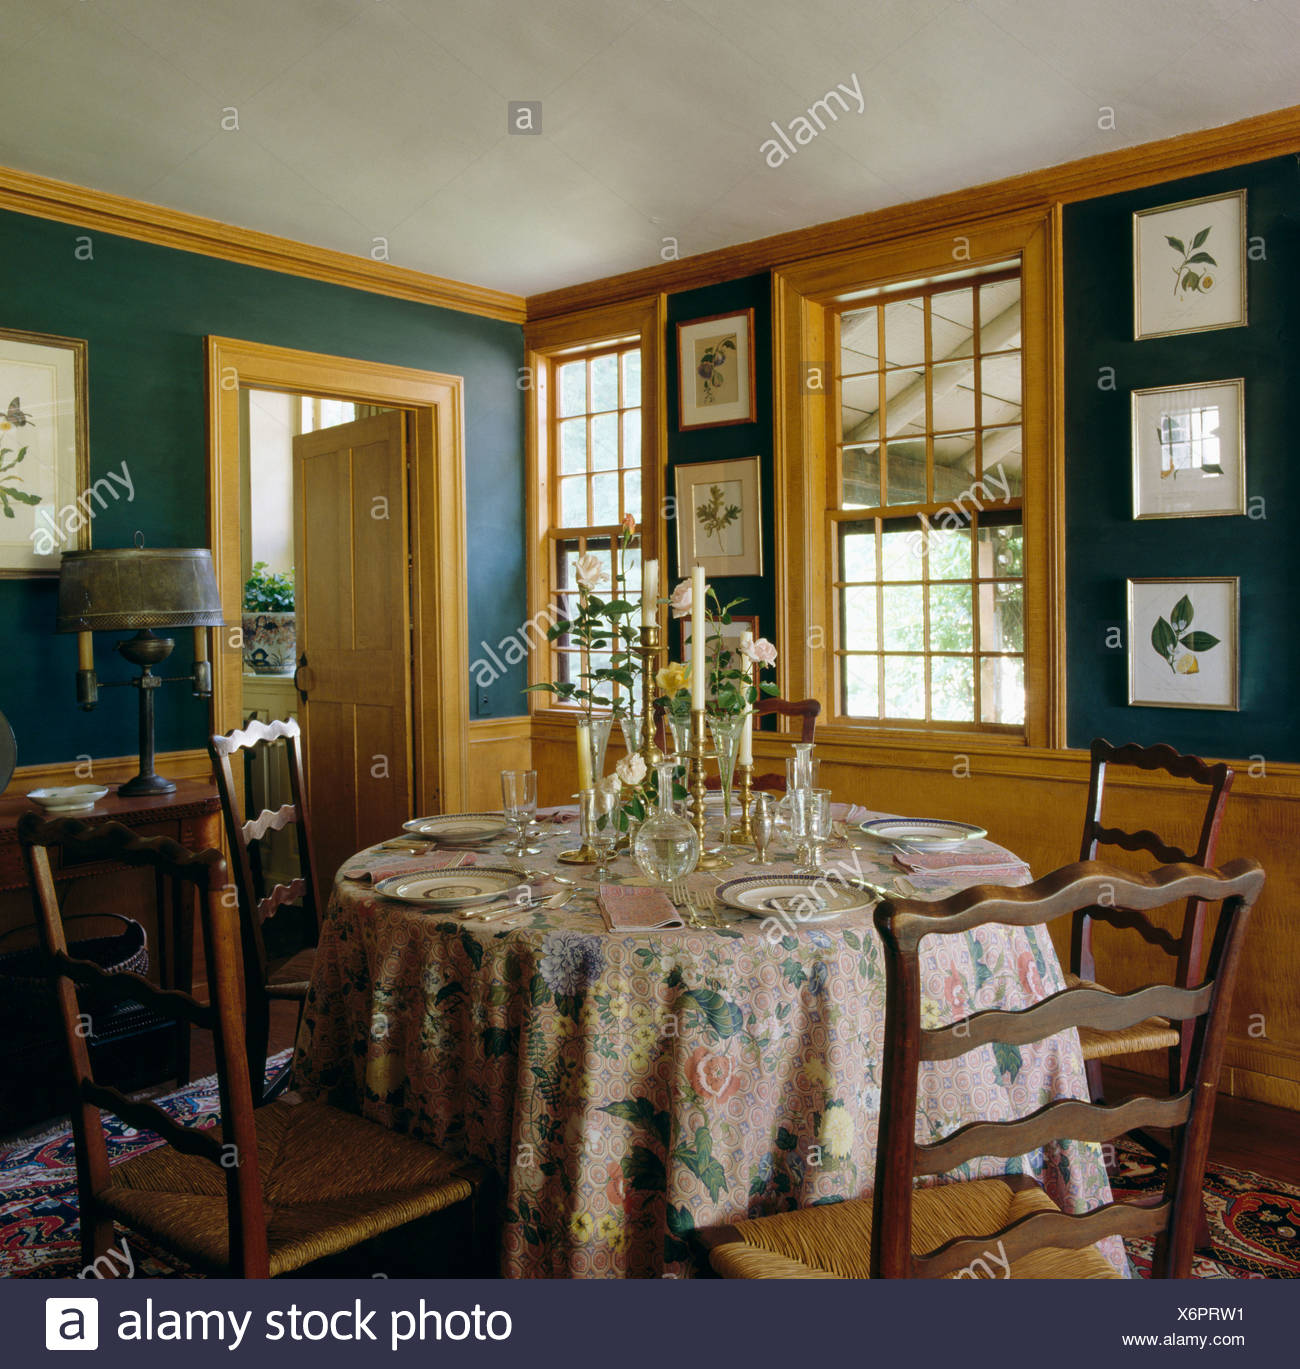 Antique Ladder Back Chairs At Circular Table With Floral Cloth In Dark Green Country Dining Room With Pale Woodwork Stock Photo Alamy